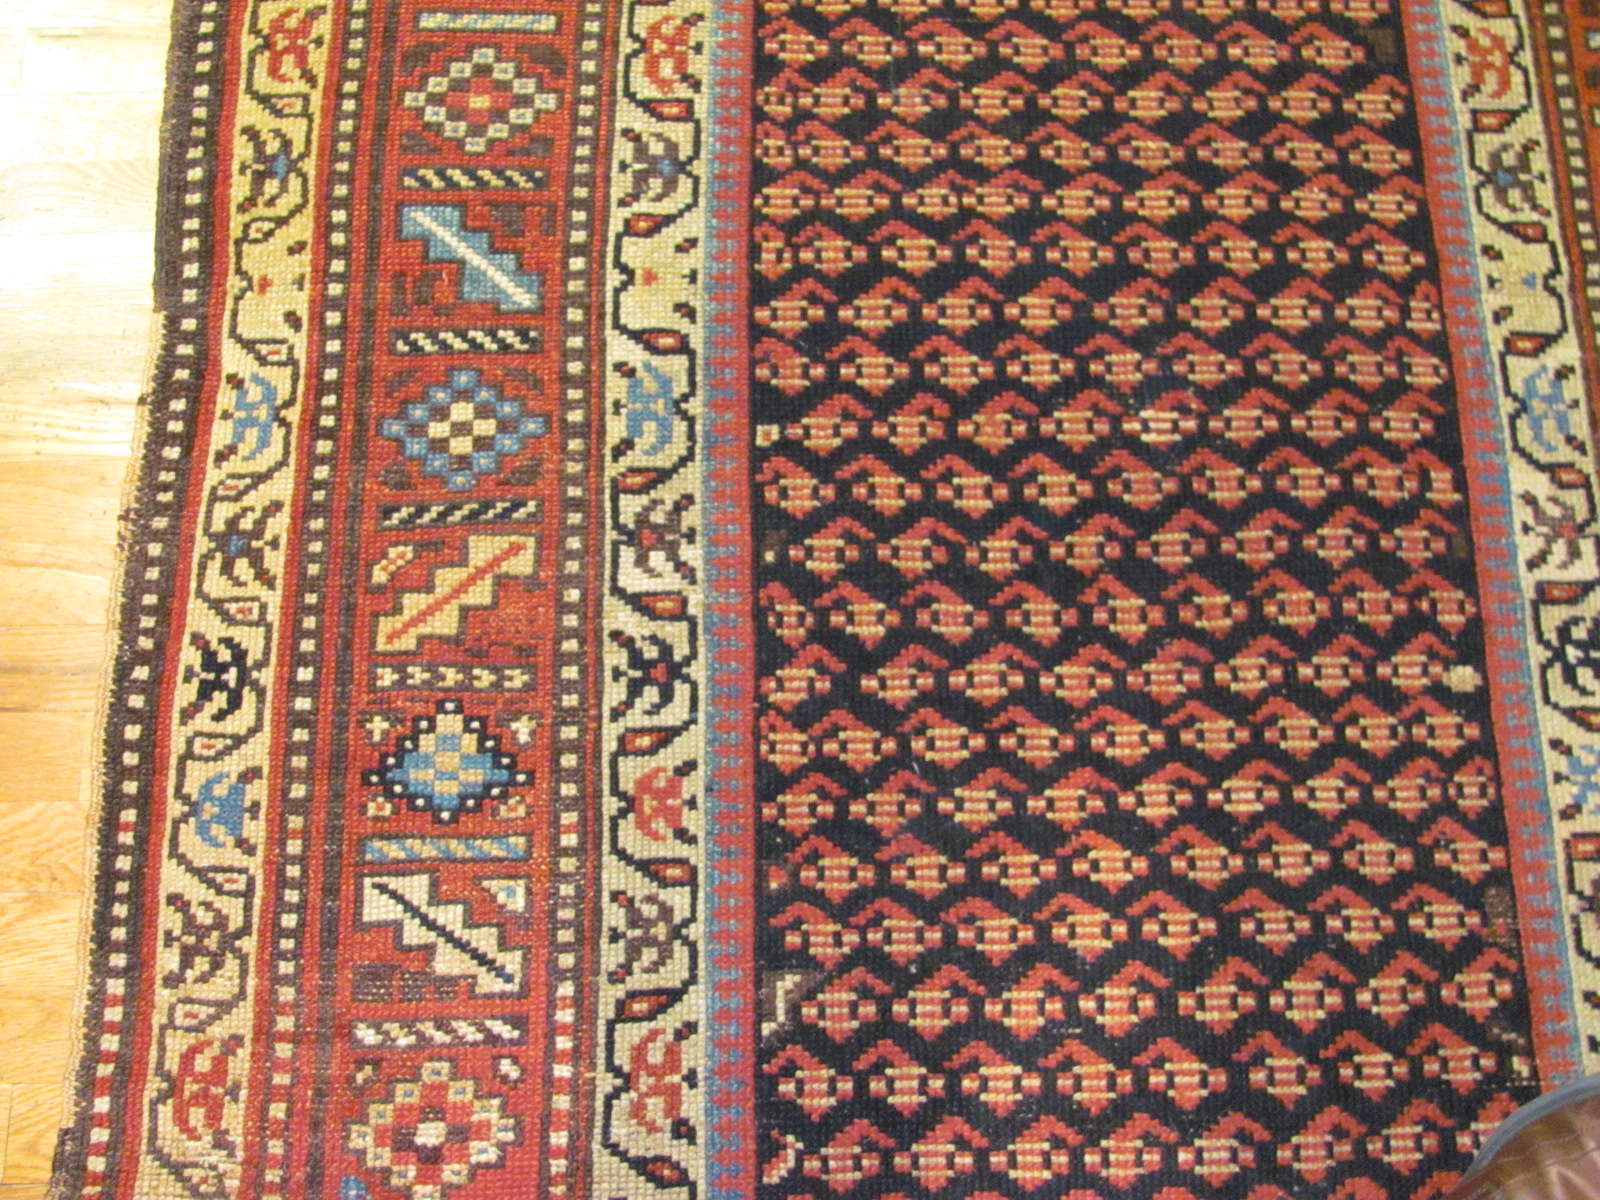 24542 antique northwest persian kurd rug 4,4x7,5 -2